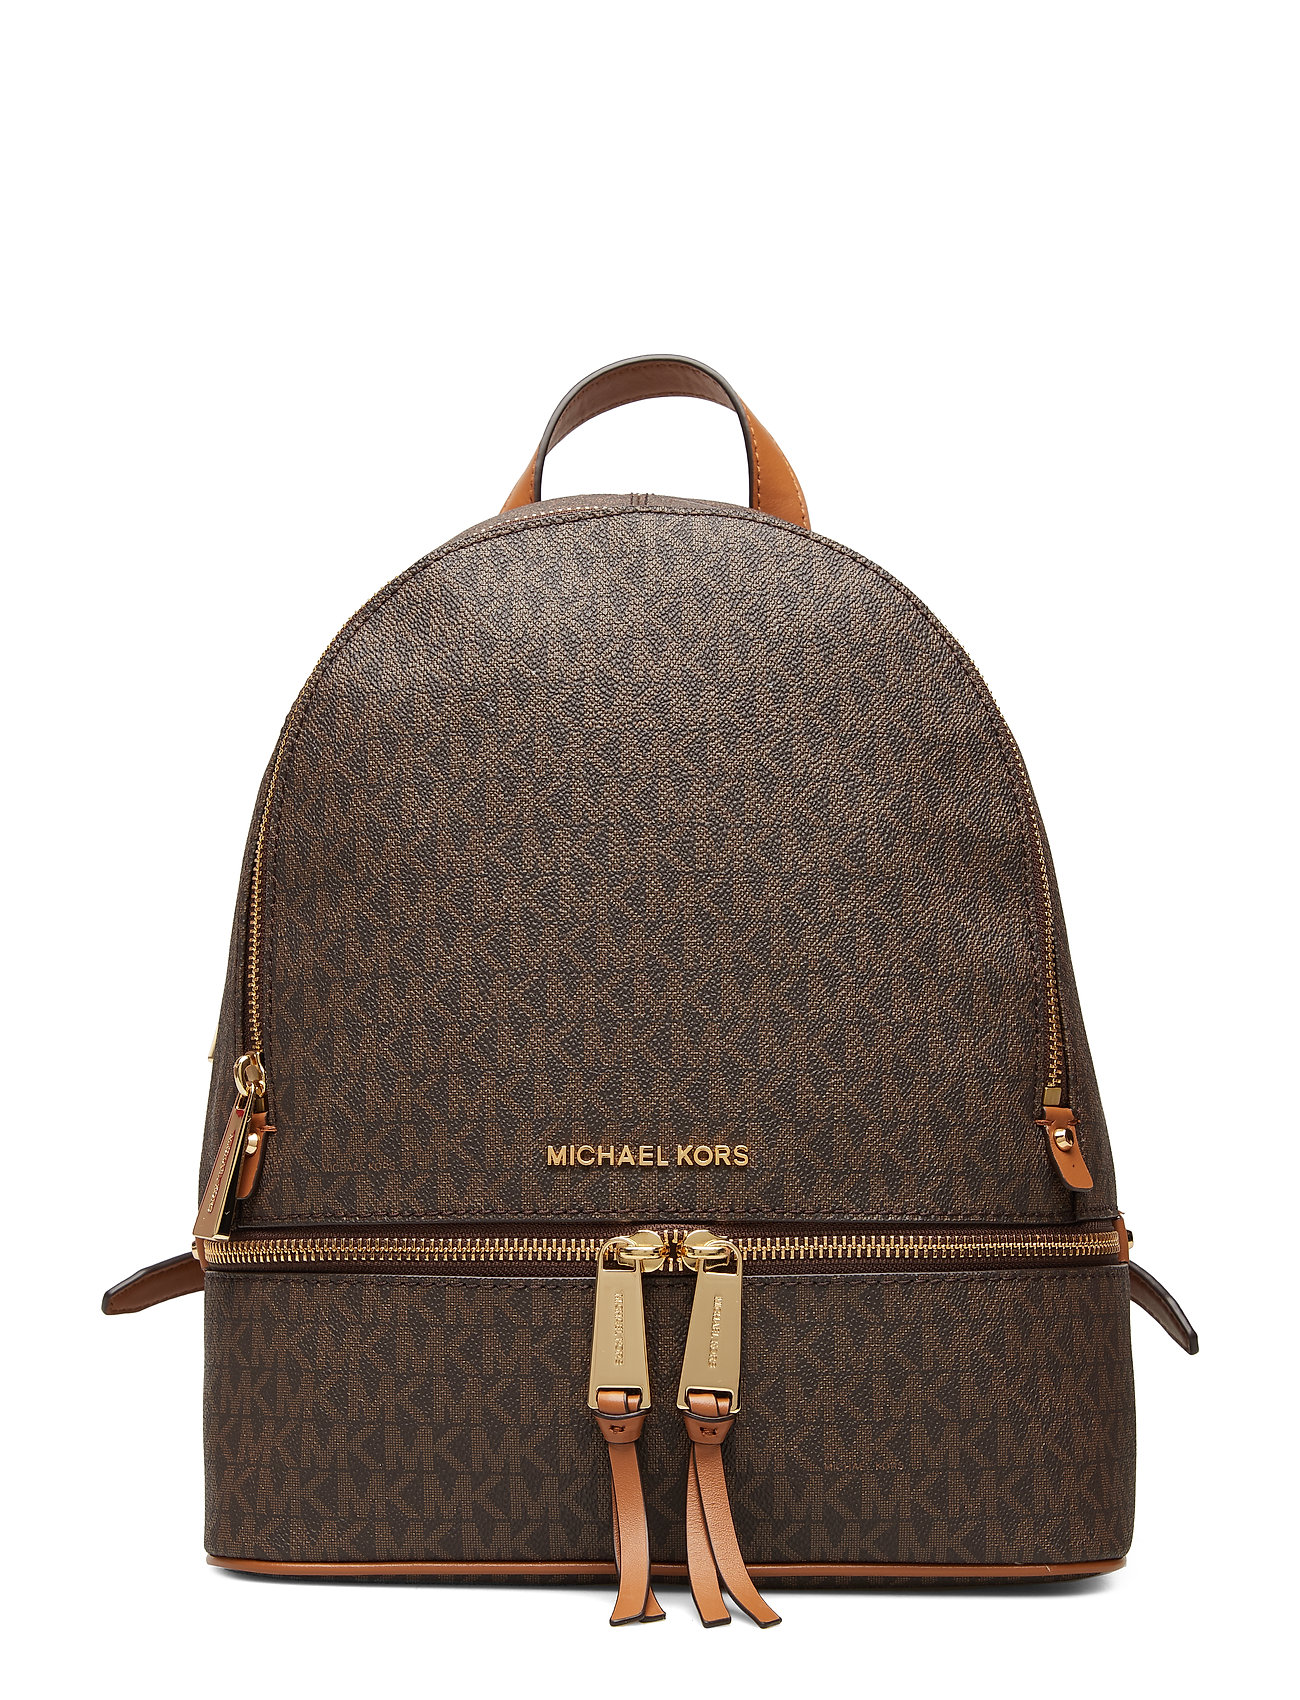 Kors Kors Md BackpackbrownMichael BackpackbrownMichael Bags Md Kors Md Kors BackpackbrownMichael Bags Md BackpackbrownMichael Bags 3JTclFK1